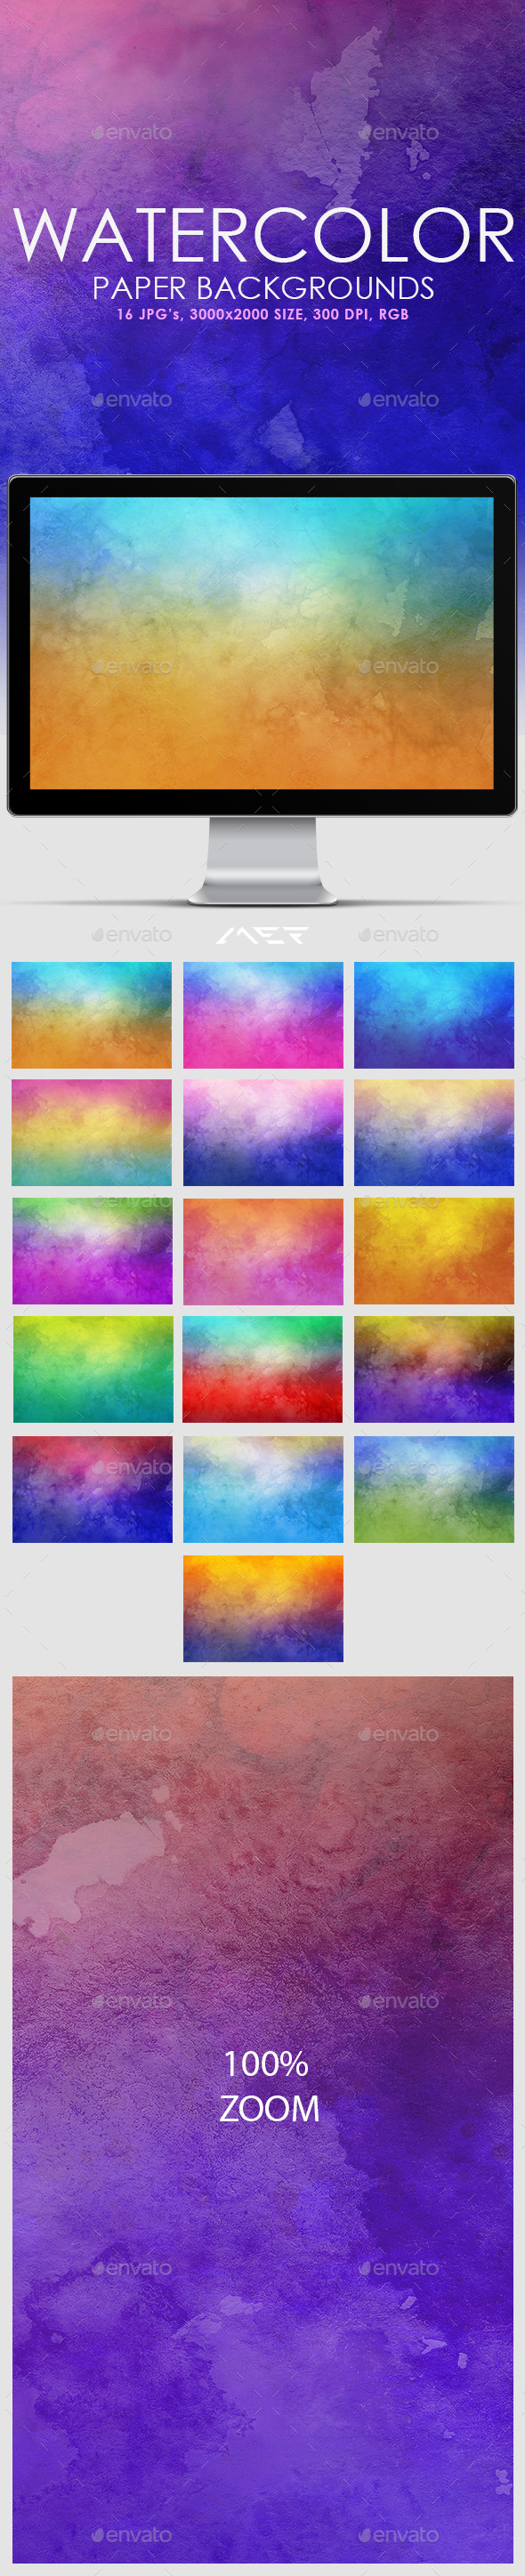 Watercolor Paper Backgrounds - Backgrounds Graphics